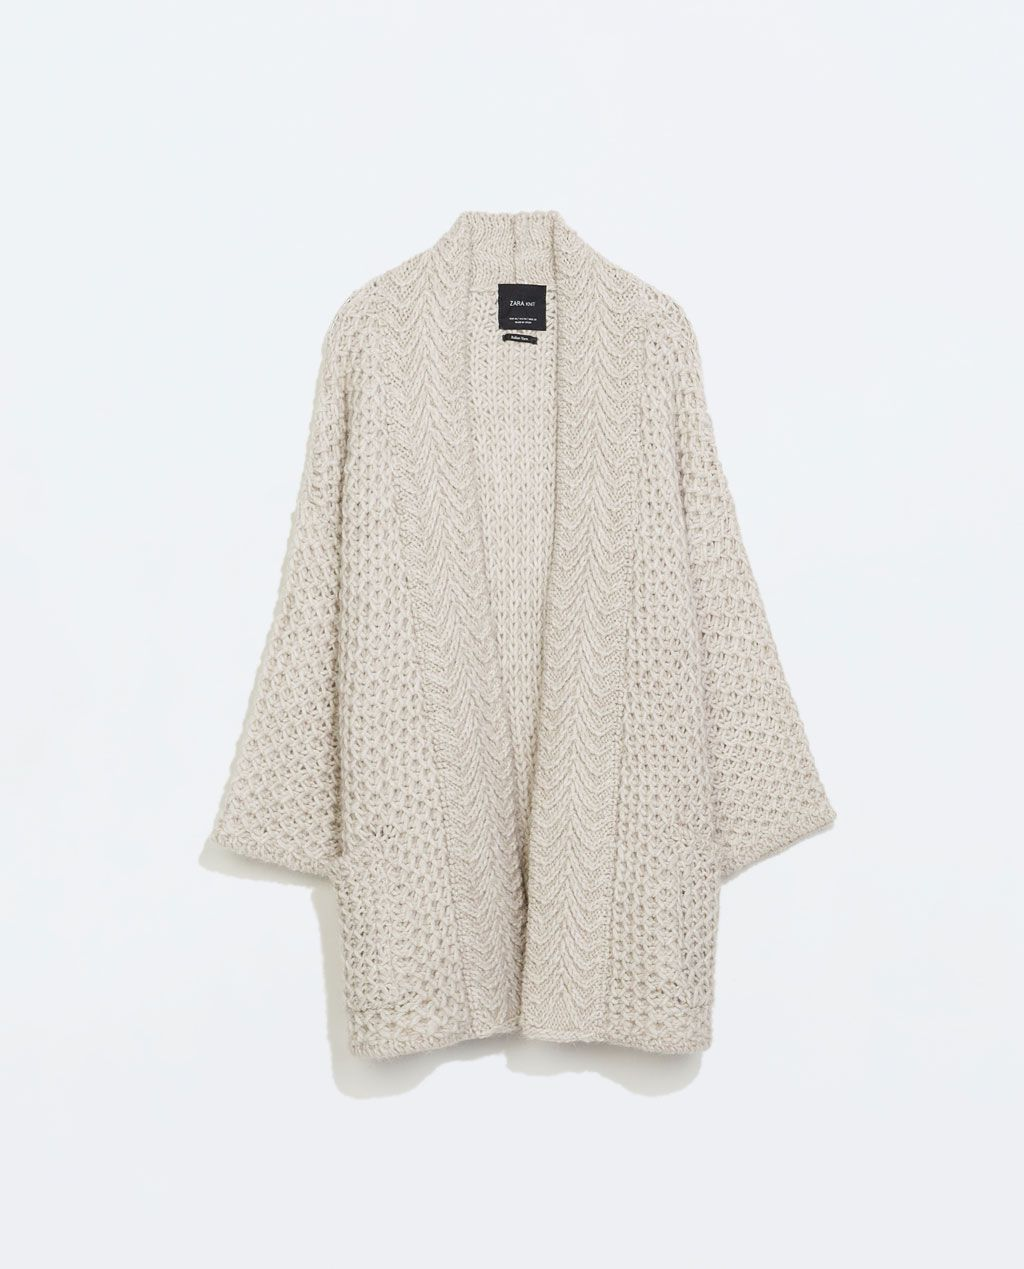 02f9b4312a2f Image 5 of KNIT CARDIGAN WITH POCKETS from Zara